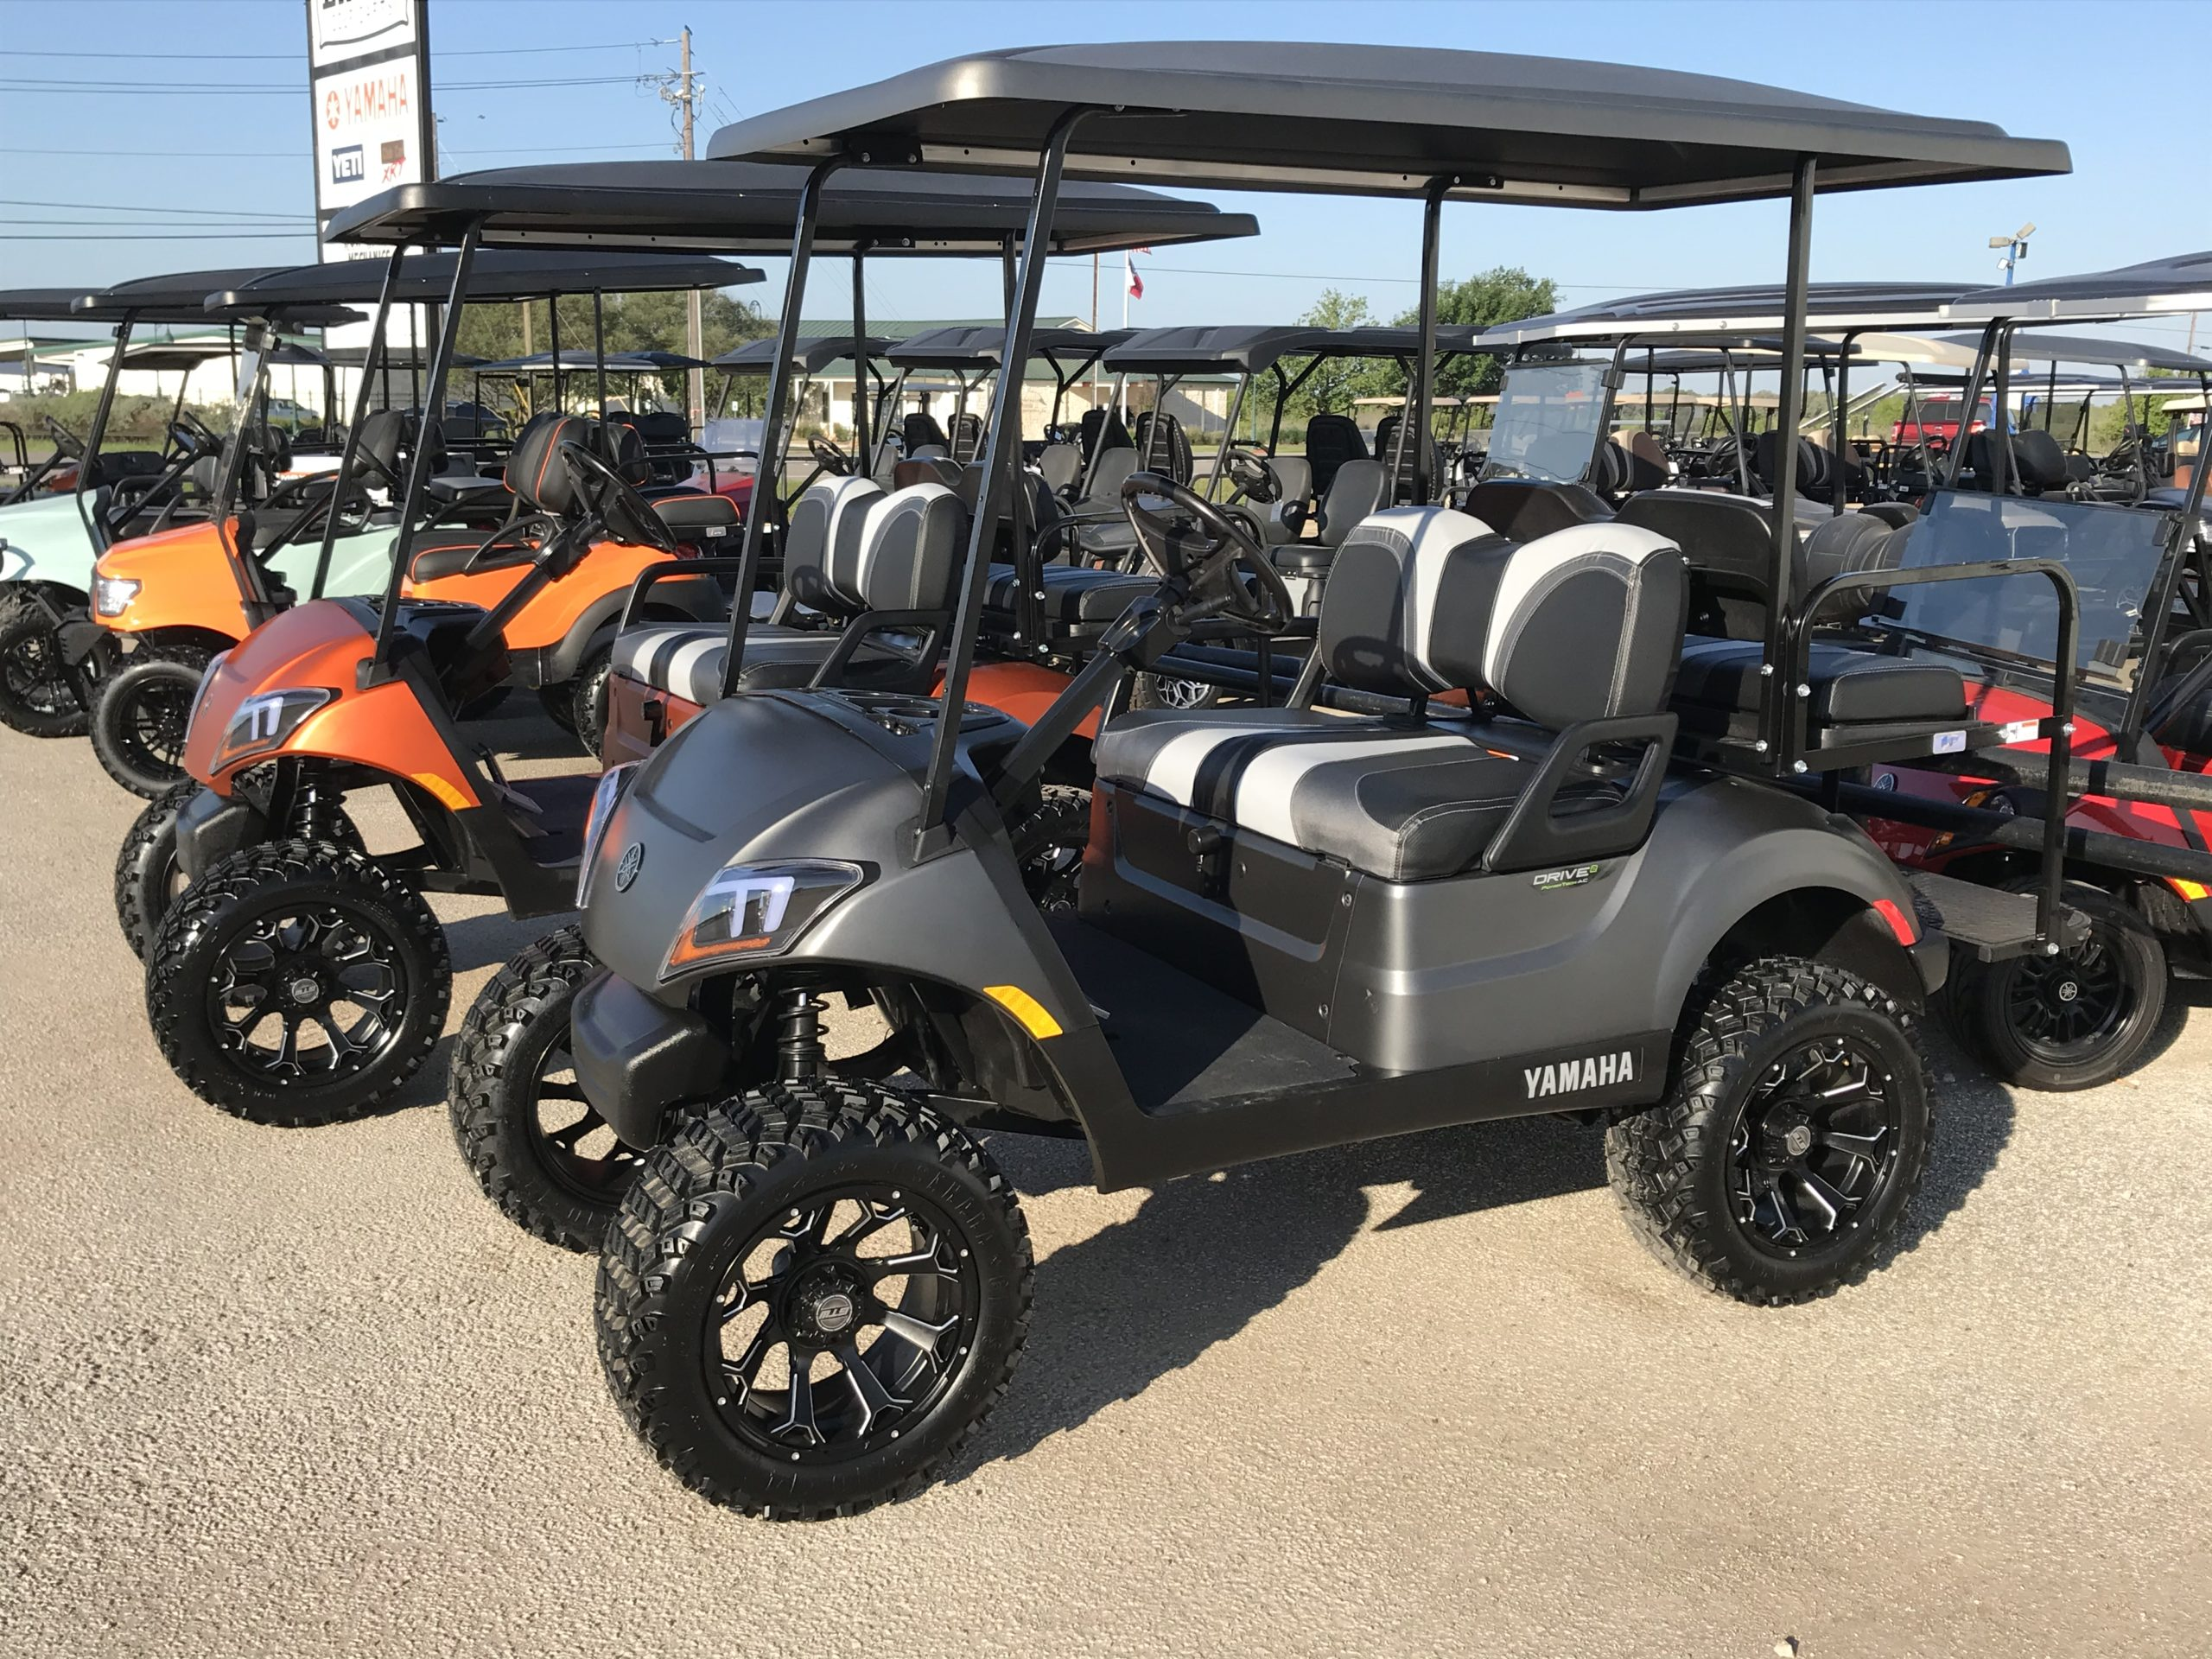 Austin Golf Cart Dealer Yamaha Golf Cart Dealer Ennis Golf Carts